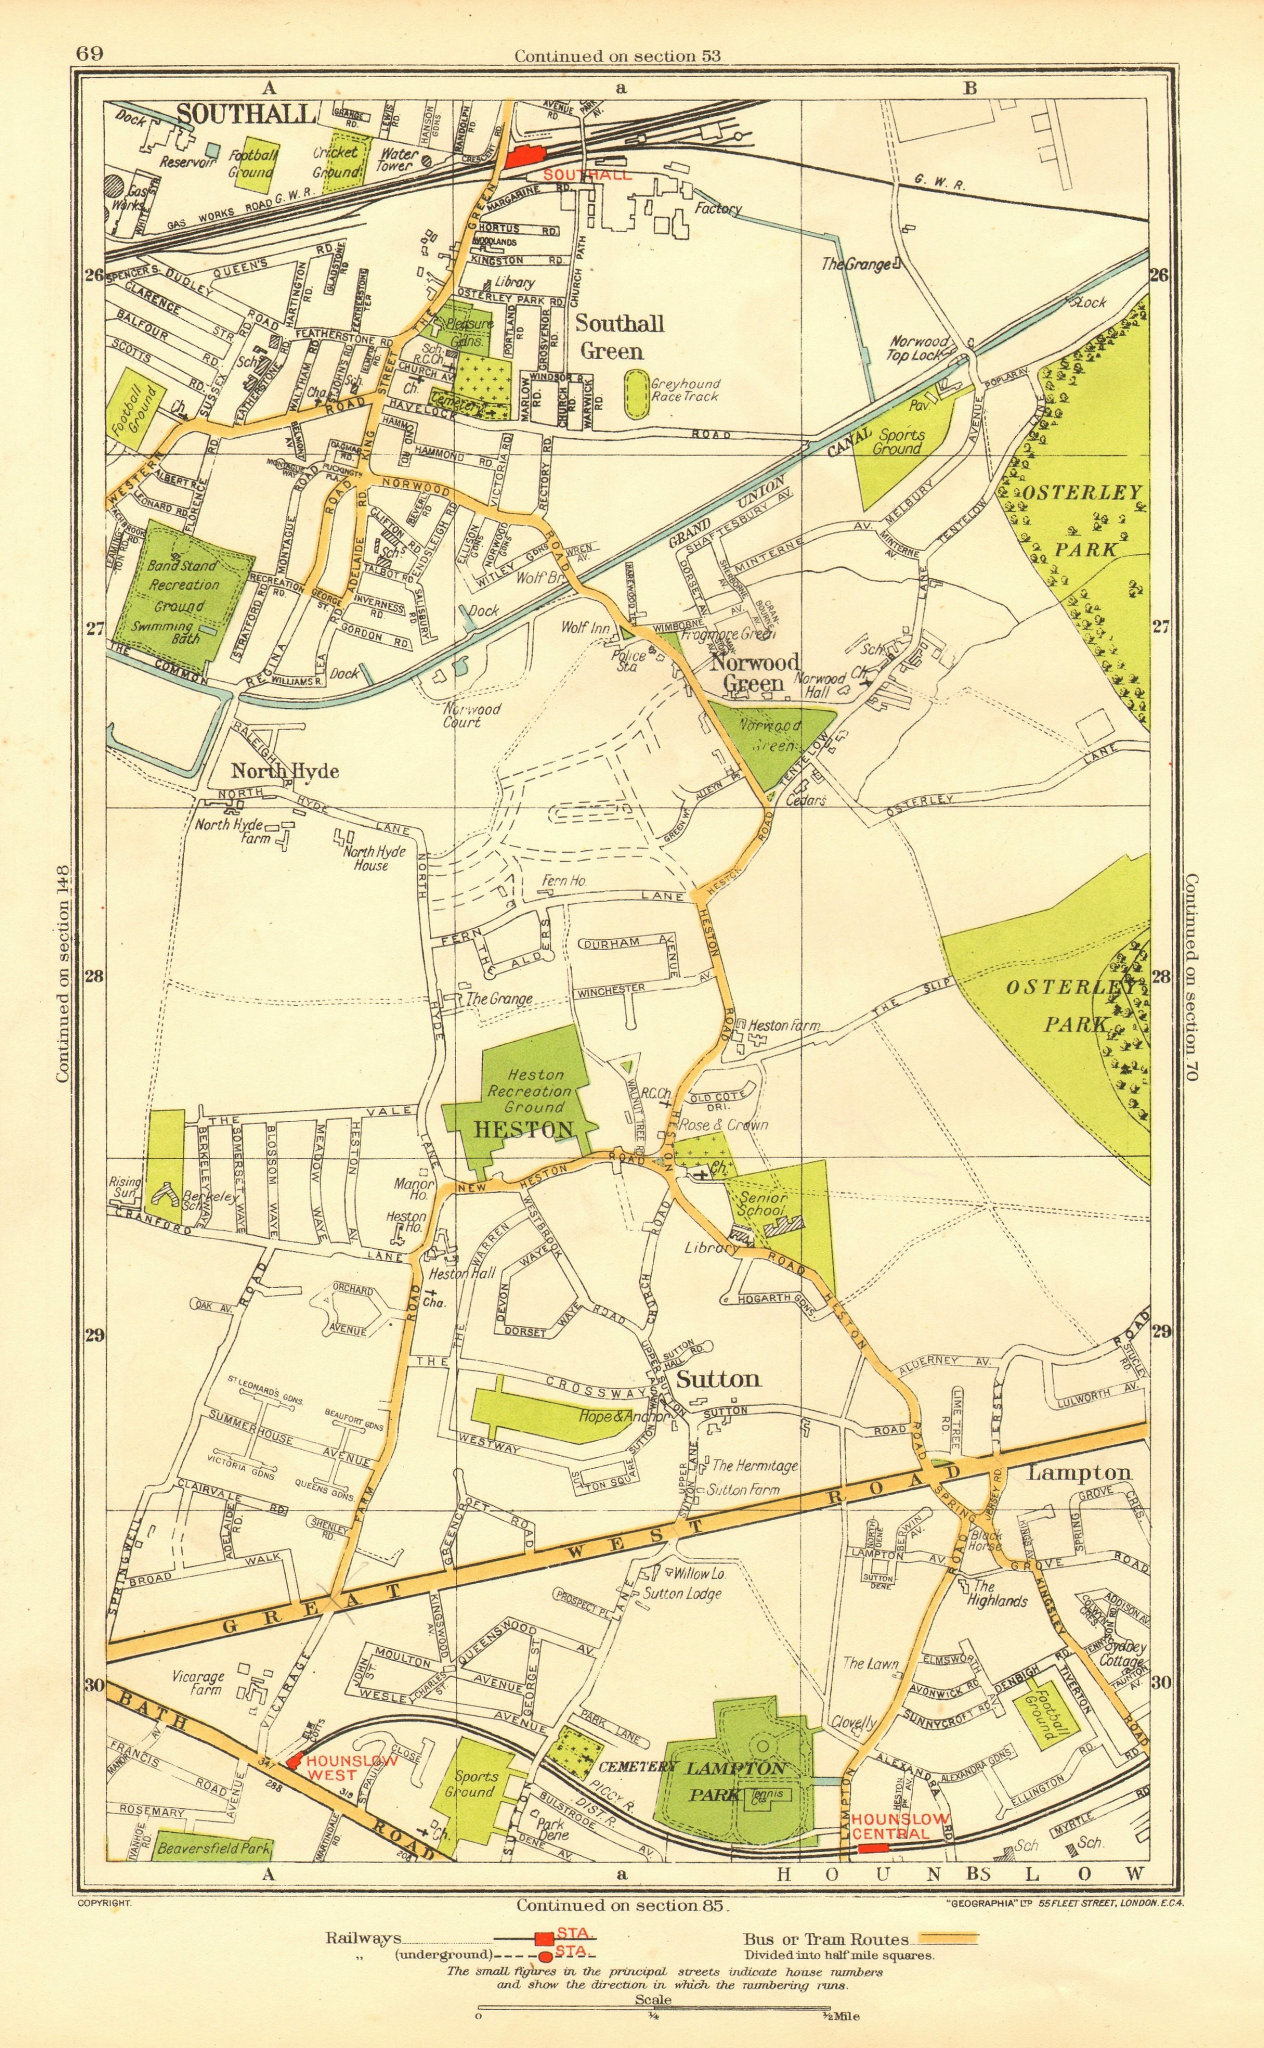 Associate Product HESTON. Hounslow Lampton Norwood Green Southall North Hyde Sutton 1937 old map